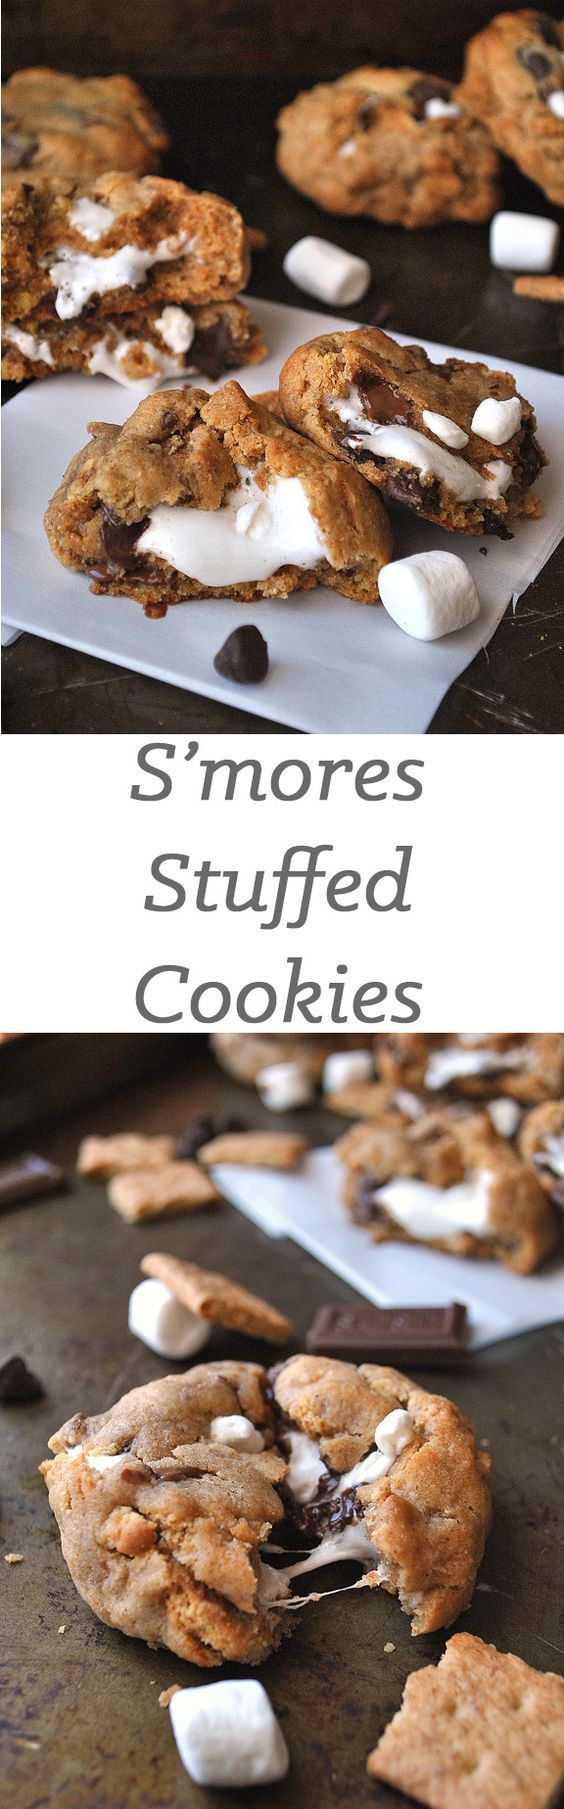 S'mores Stuffed Cookies   9 Insanely Delicious S'mores Dessert Recipes   http://www.hercampus.com/health/food/9-insanely-delicious-smores-dessert-recipes